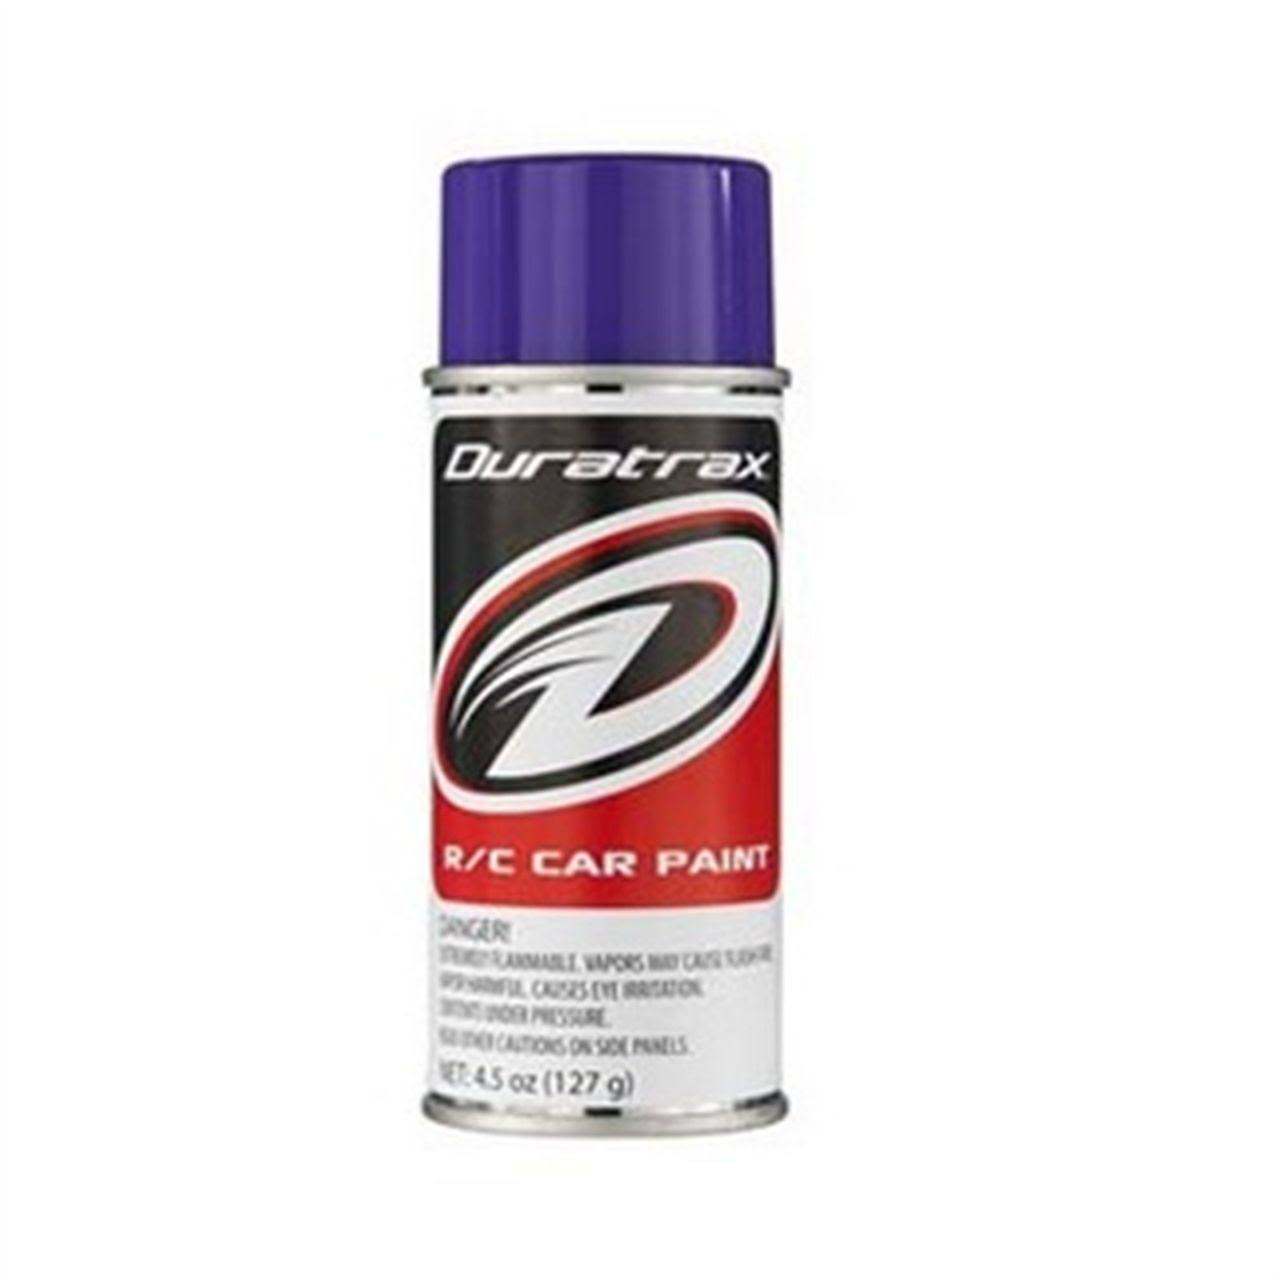 Duratrax DTXR4273 Polycarbonate Spray - Candy Purple, 4.5oz